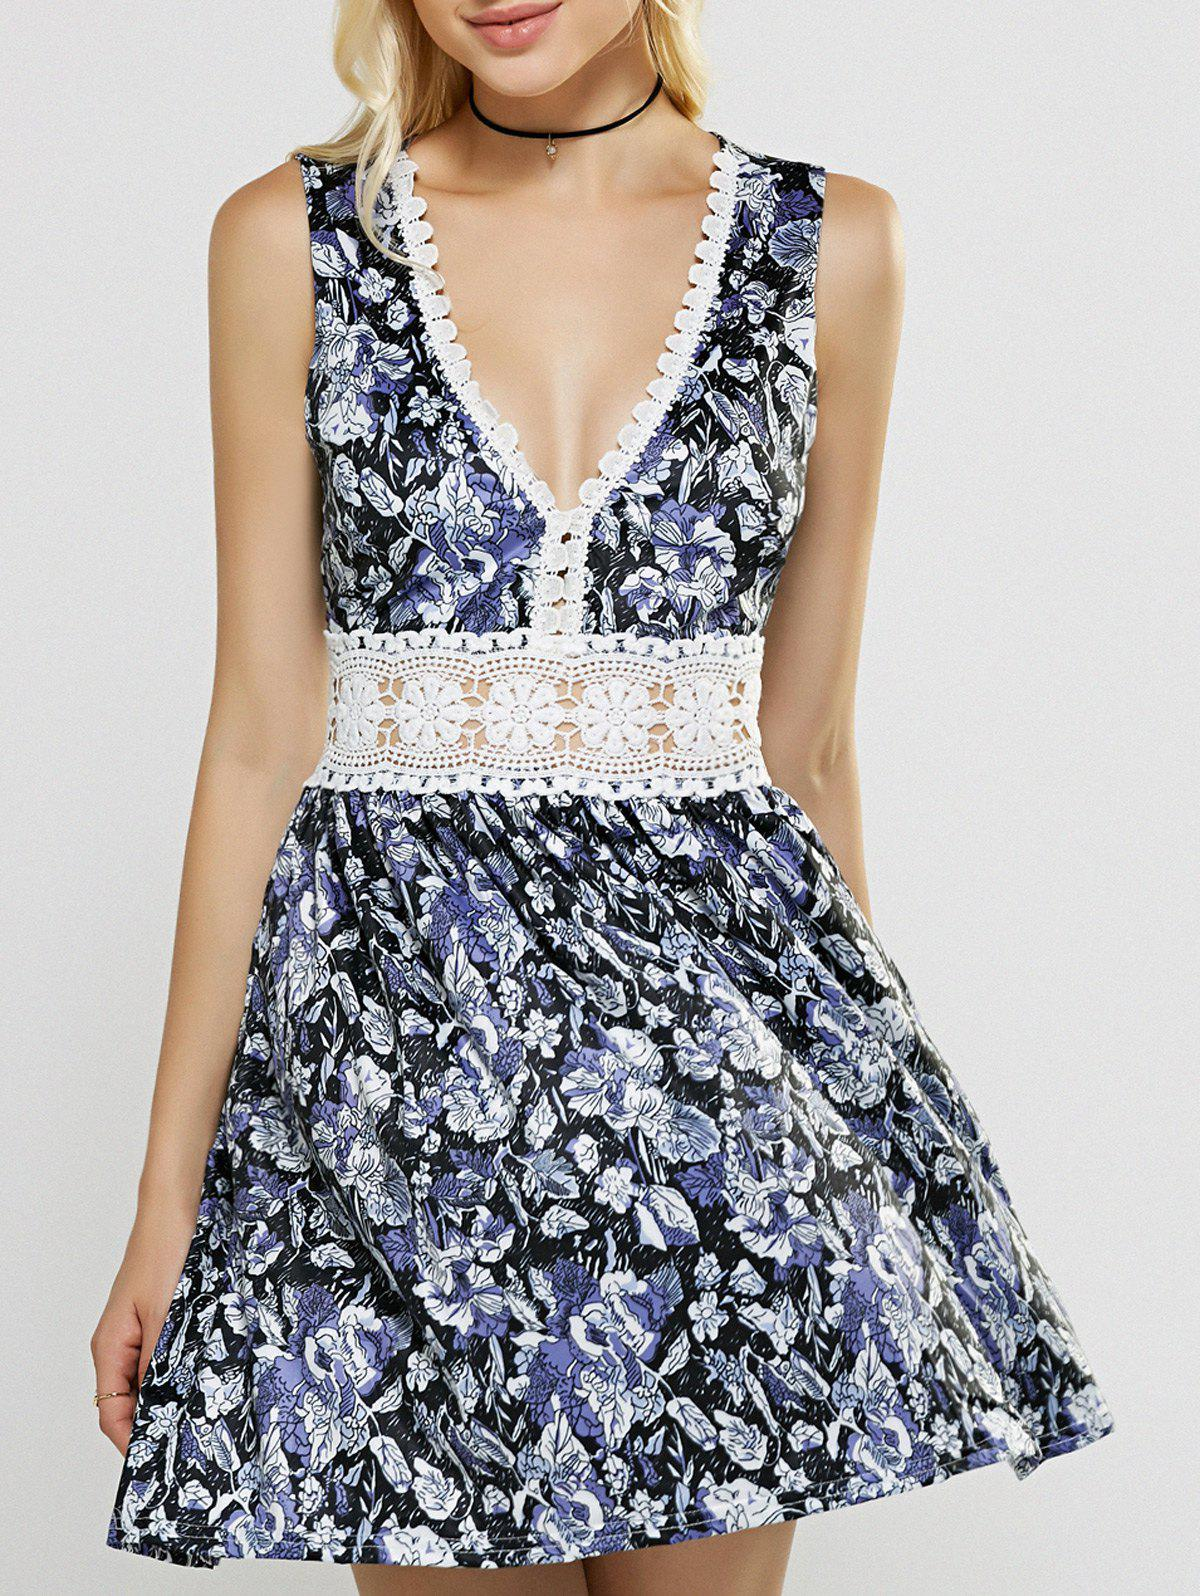 Plunging Neck Laciness Hollow Out Floral Dress